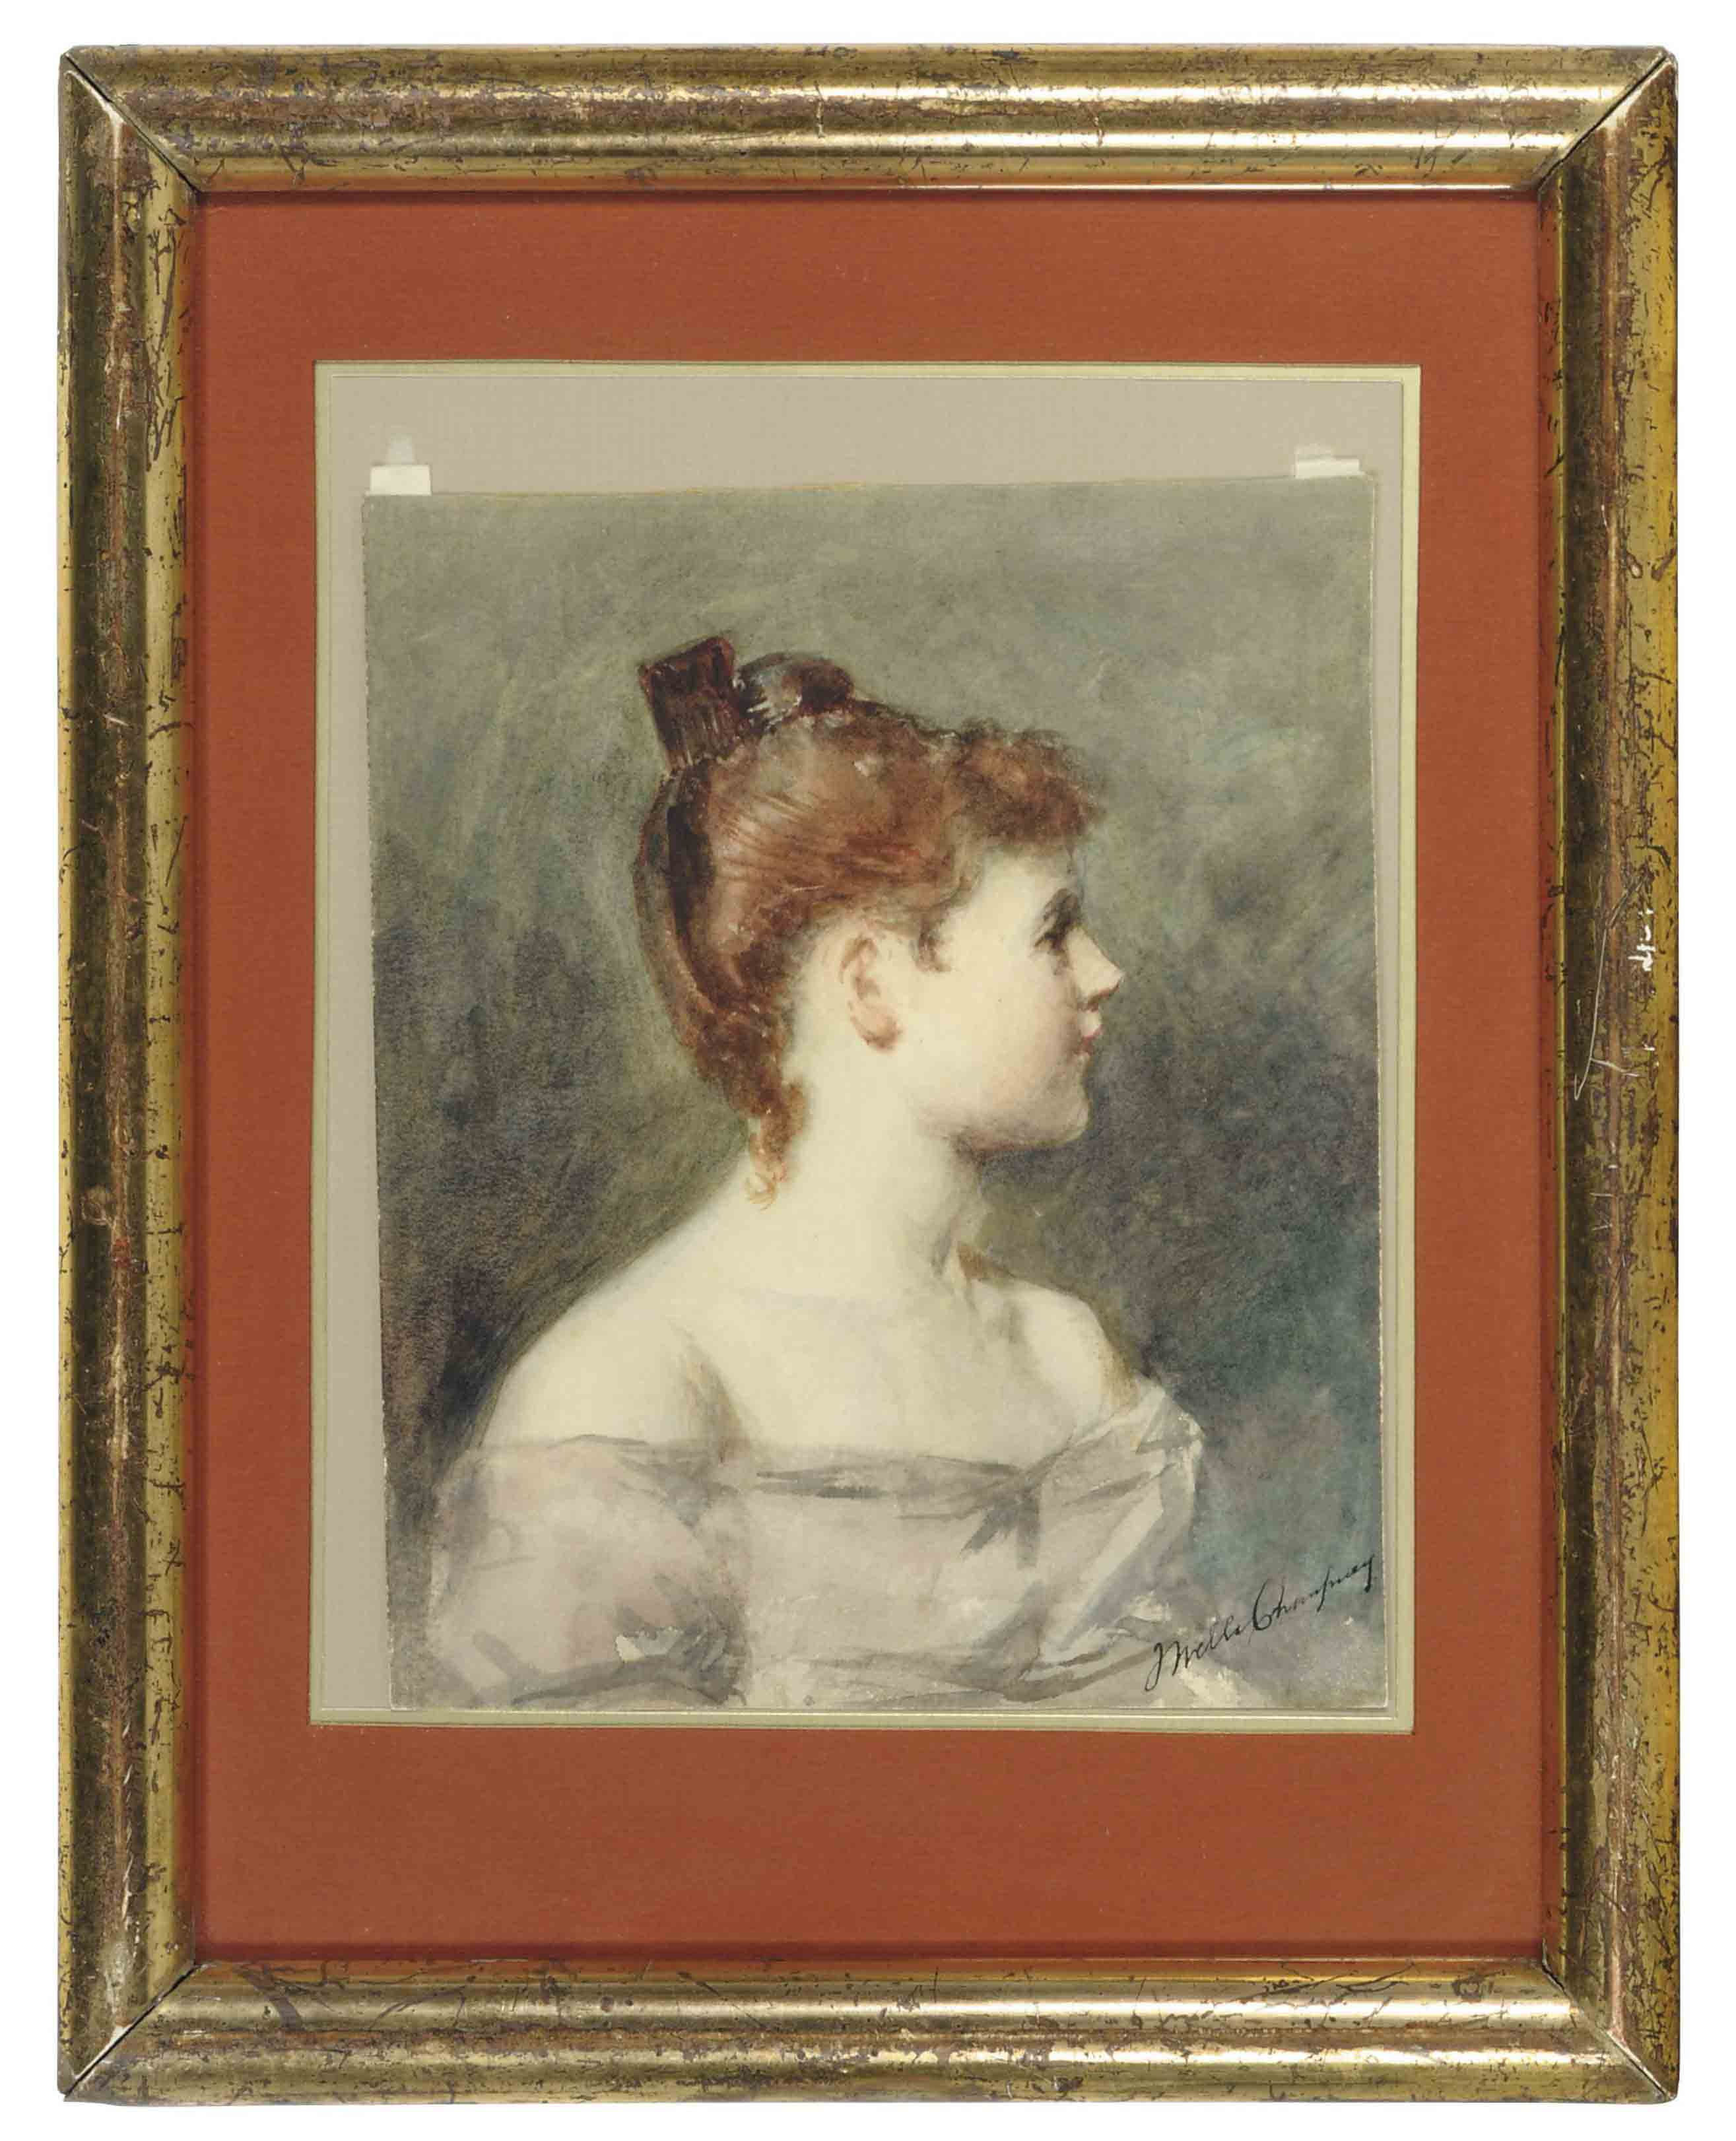 Portrait of an elegant young woman